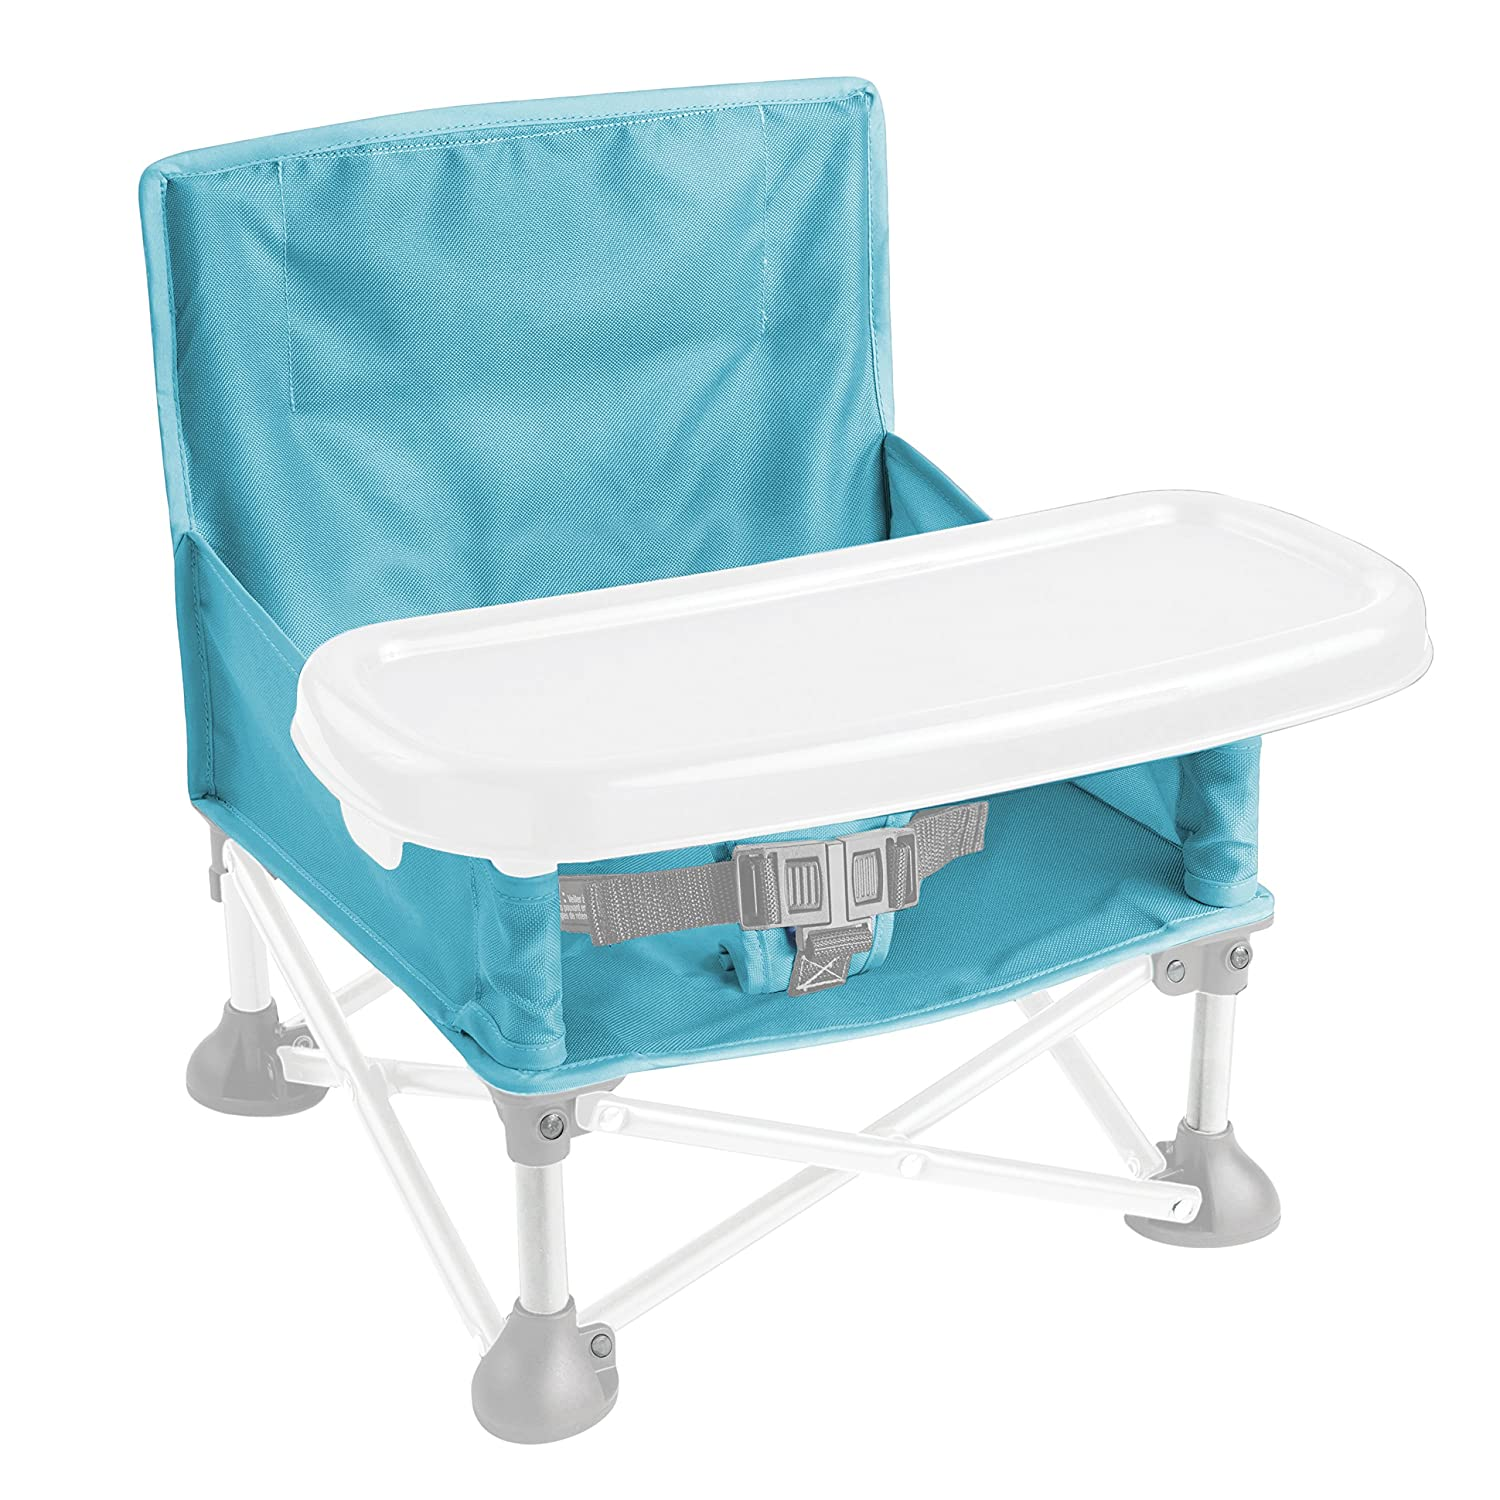 Summer Infant Pop N' Sit Booster Seat, Aqua Splash Inc. 13530